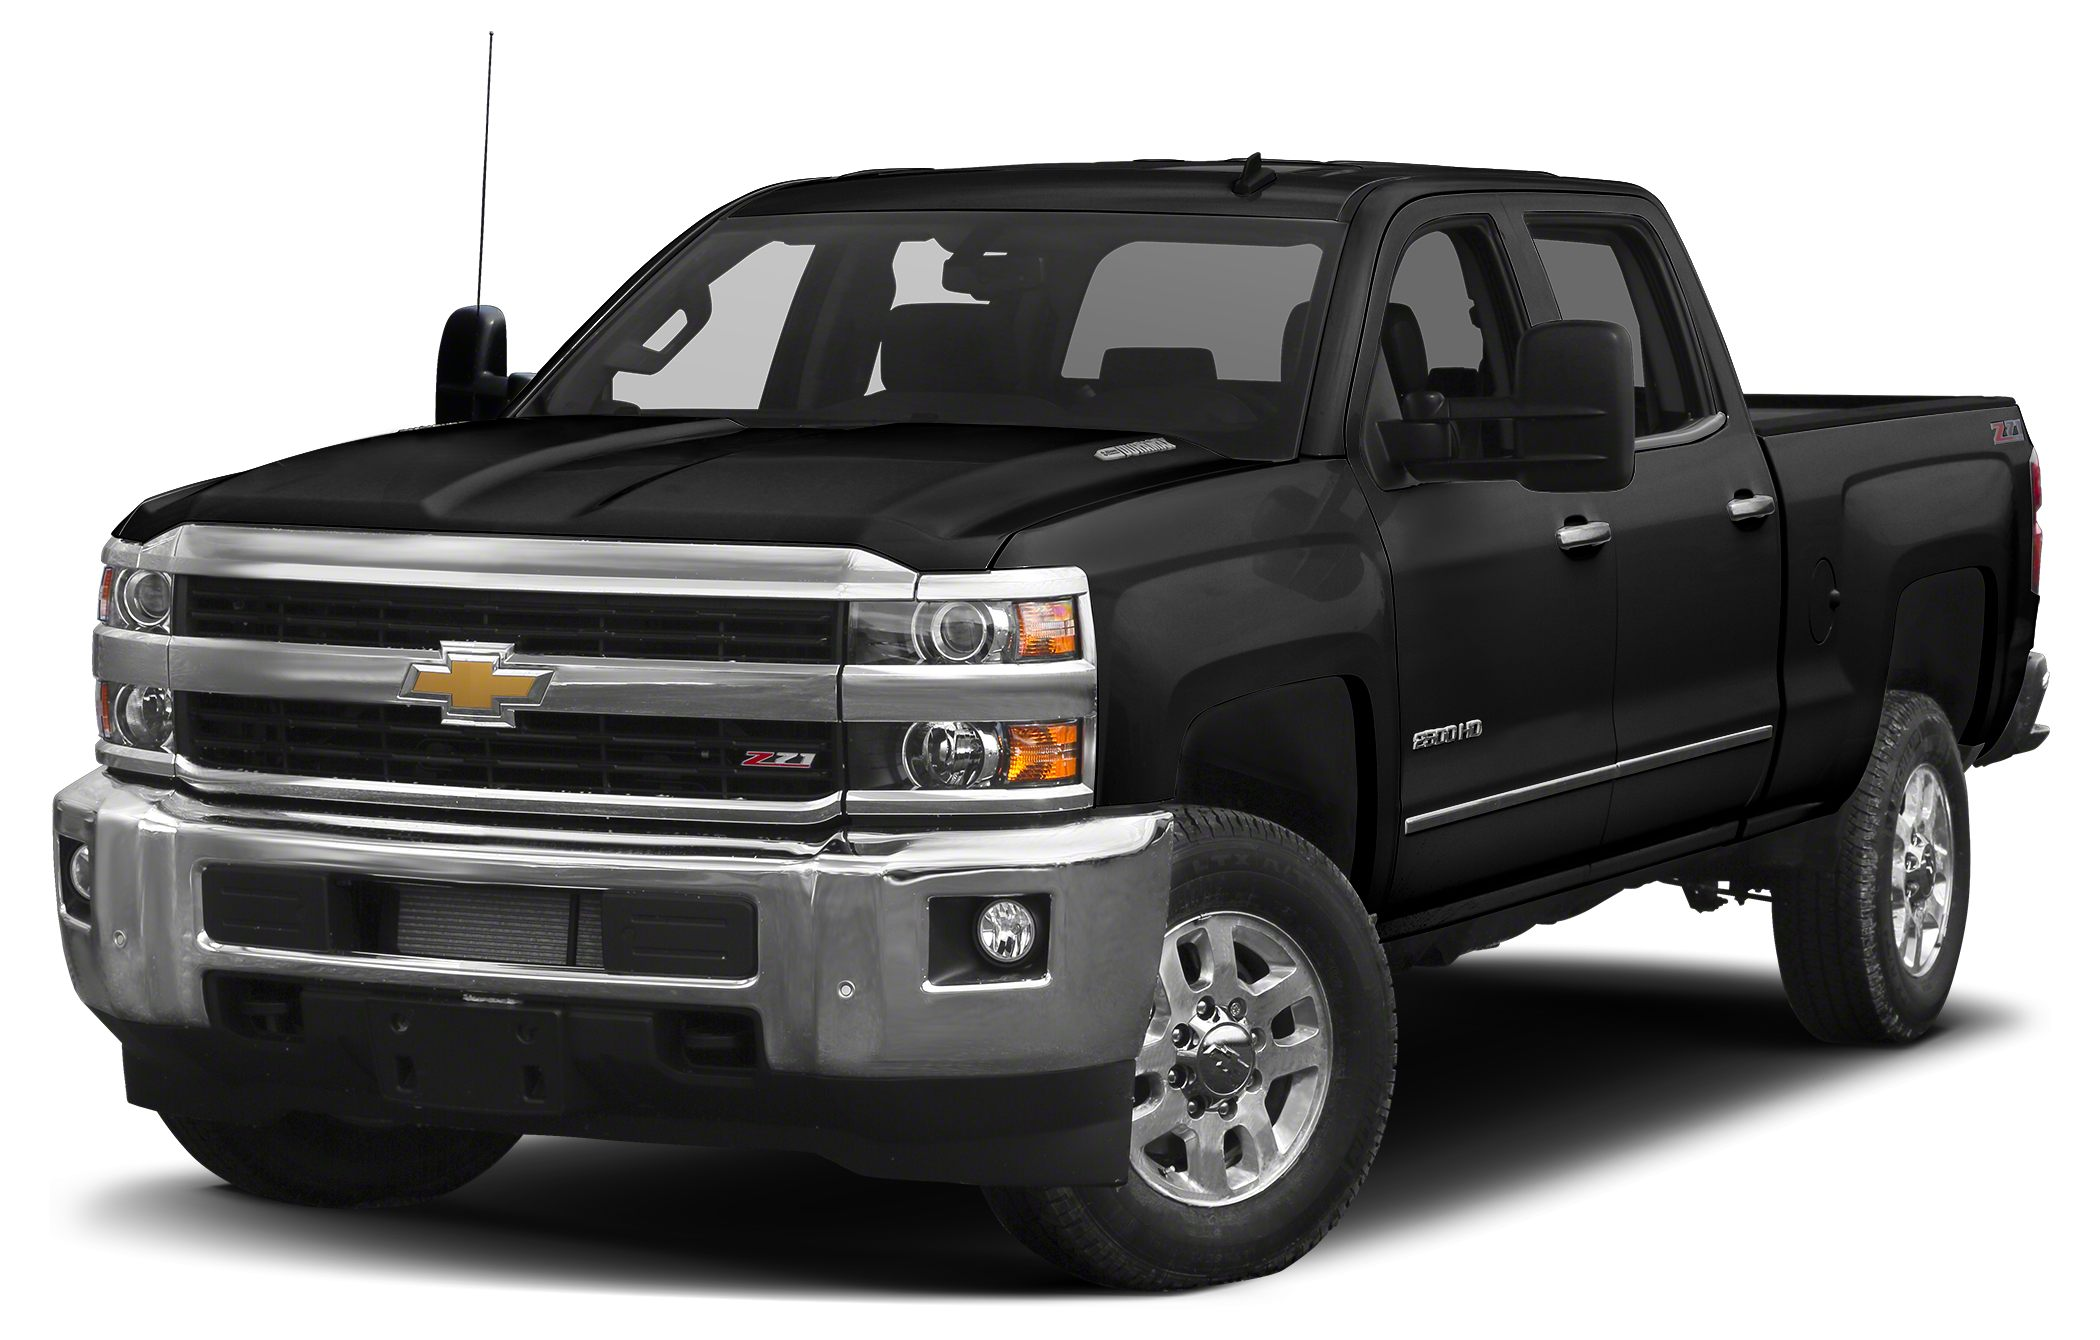 2015 Chevrolet Silverado 2500HD LTZ Black 2015 Chevrolet Silverado 2500HD LTZ 4WD Allison 1000 6-S